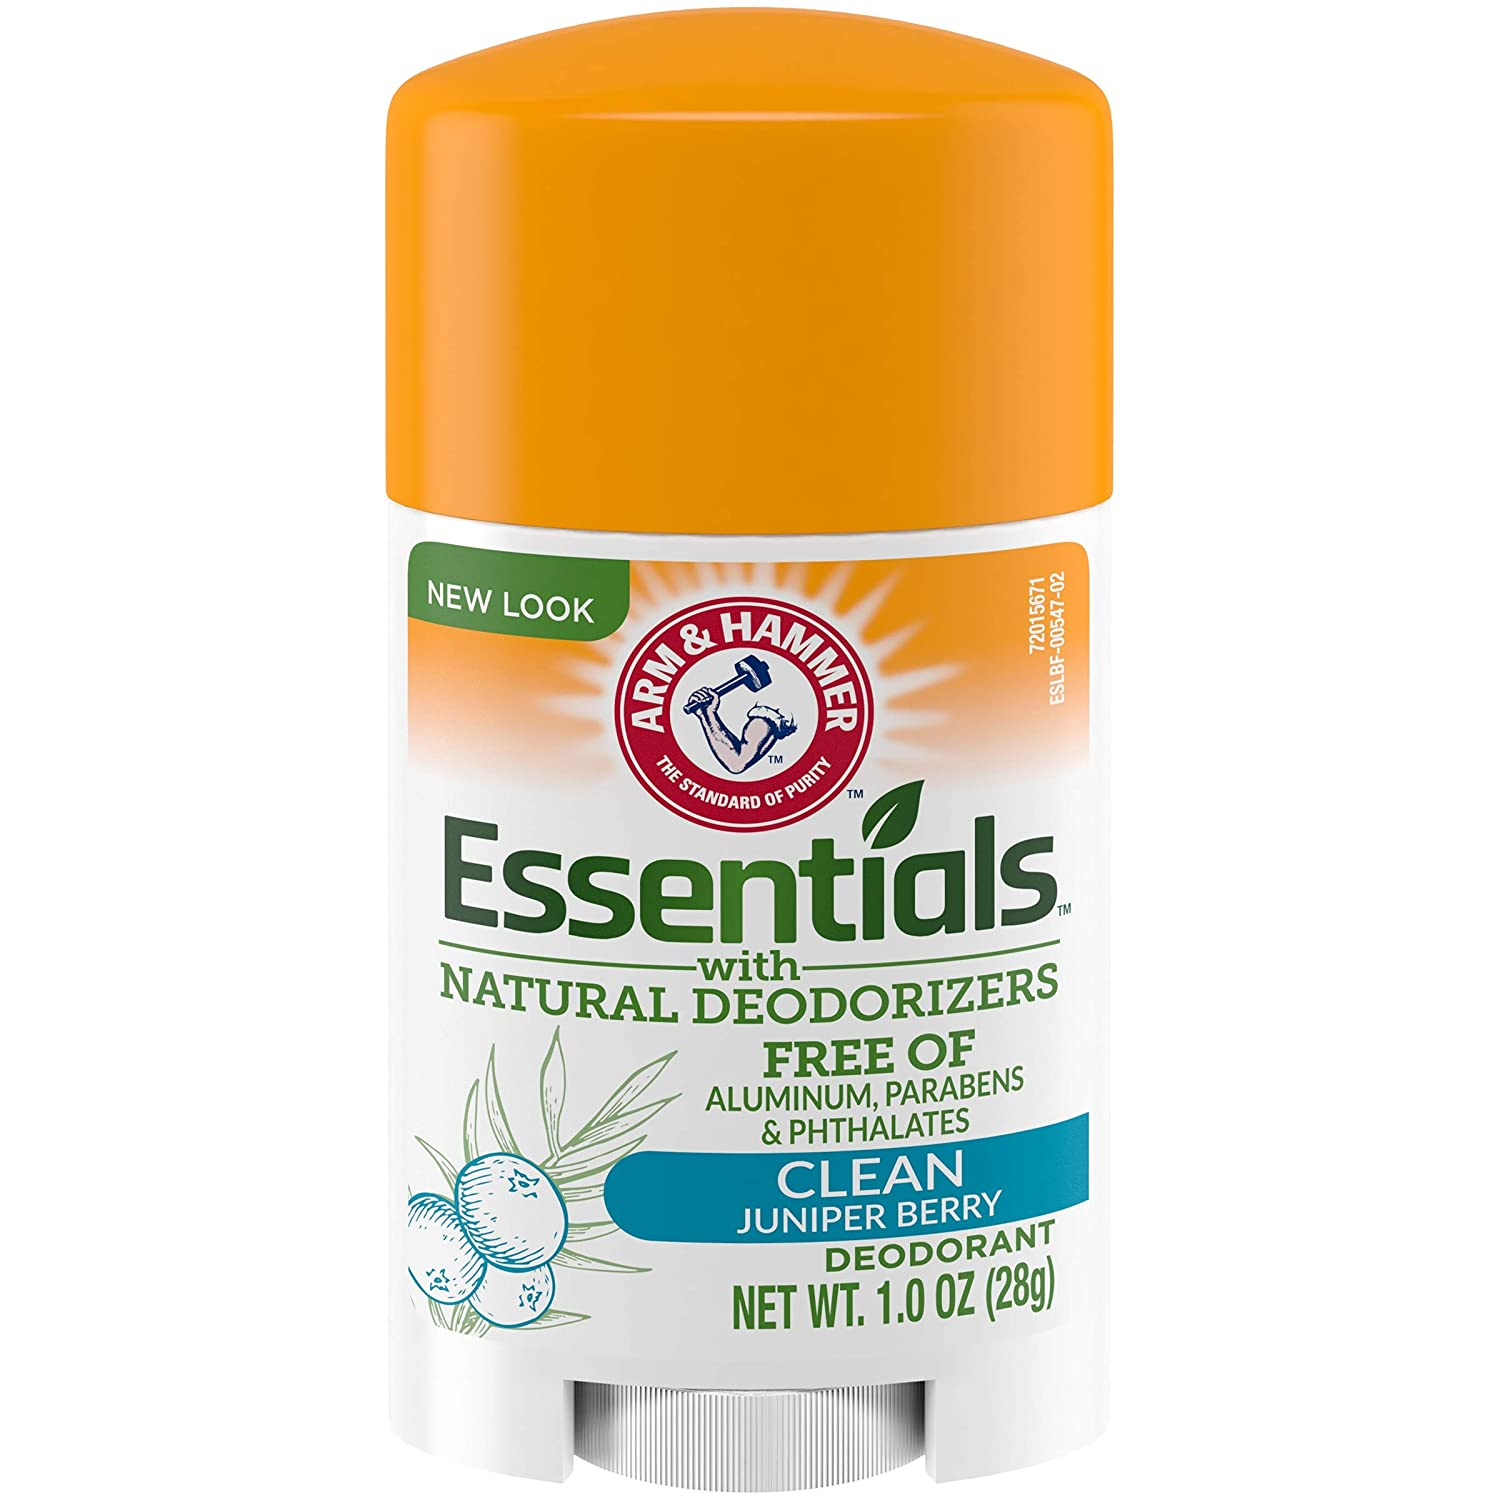 Arm & Hammer Essentials deodorant with Natural Deodorizers Clean, (Pack of 6)